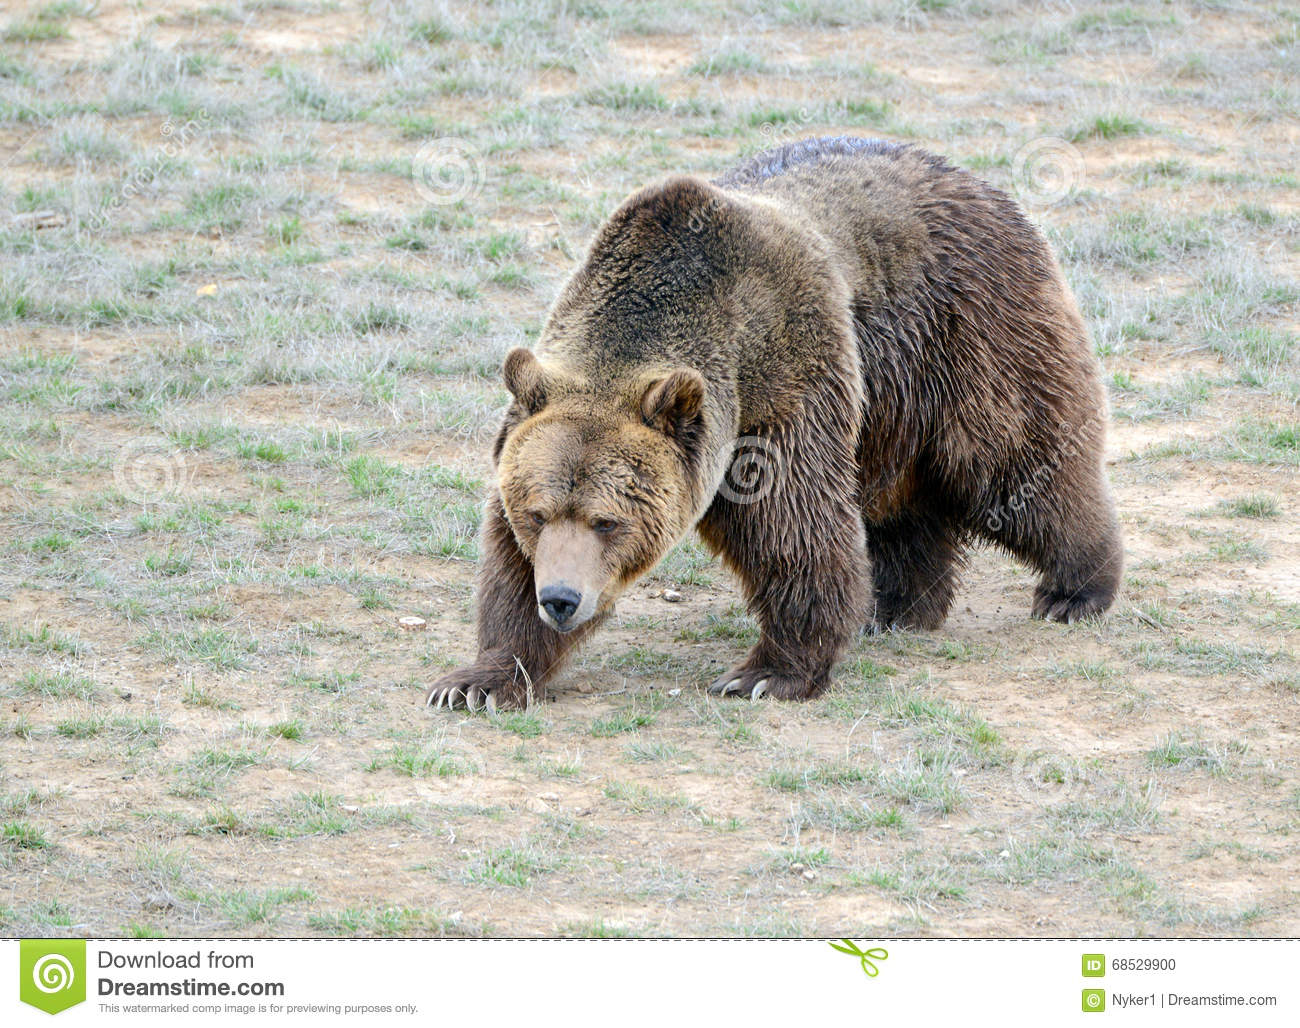 Grizzly Bear While On The California State Flag Has Been Extirpated From And Lives Only In Select Areas United States Including Limited